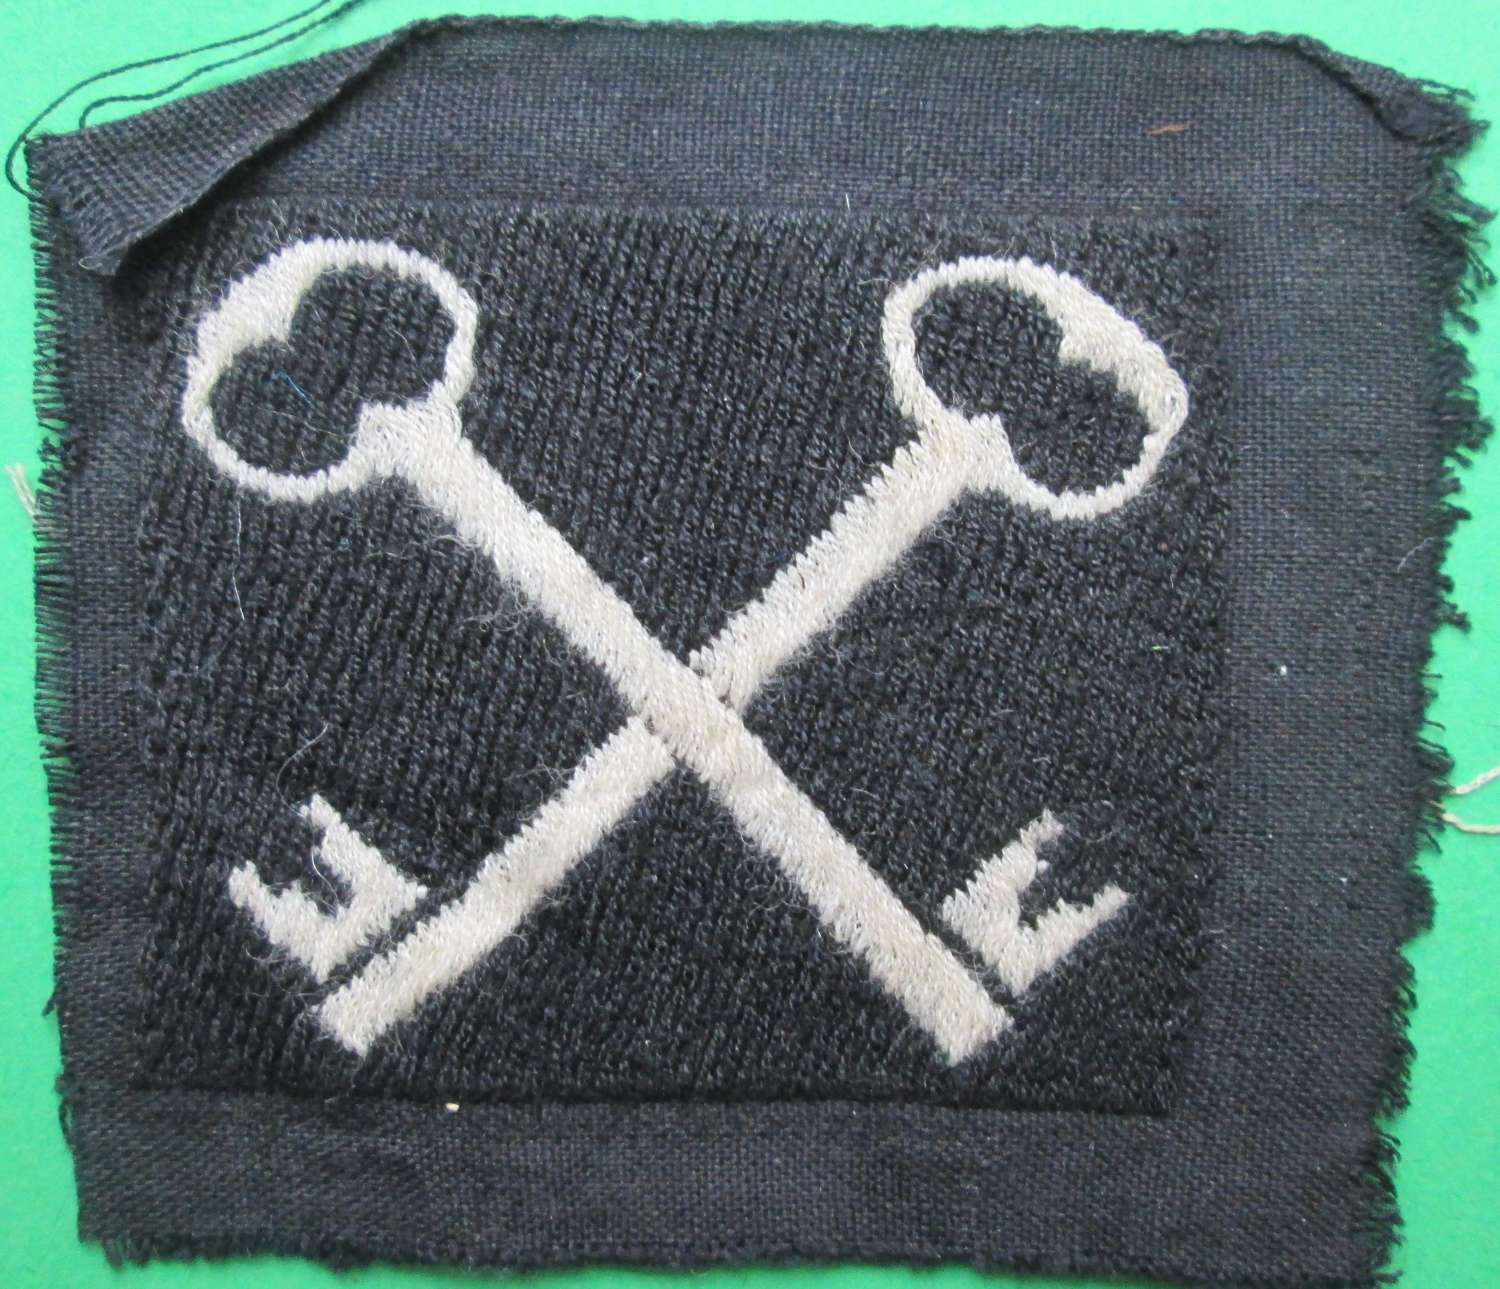 A 2ND INFANTRY DIVISION FORMATION PATCH